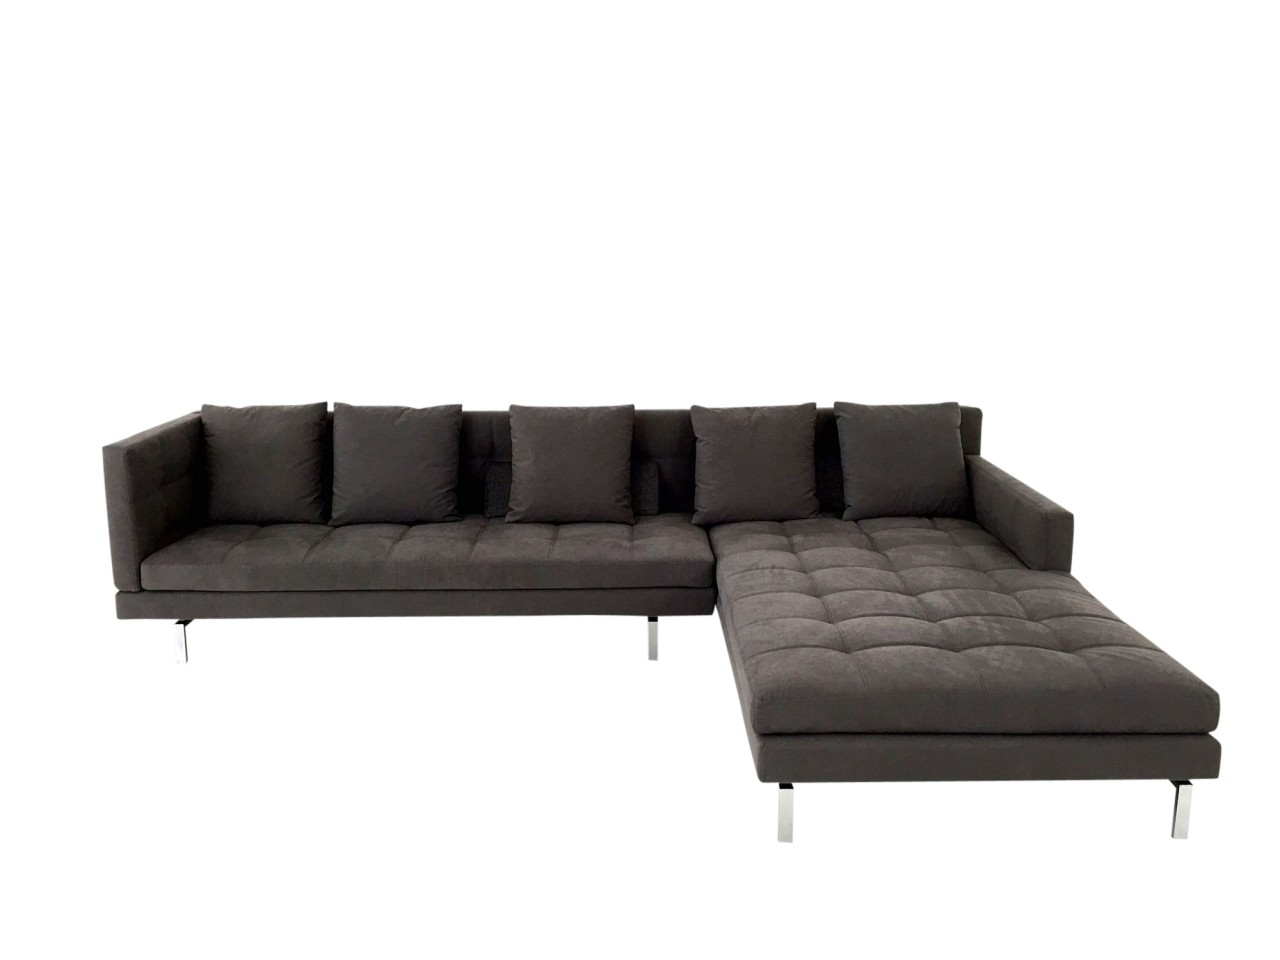 Xxl sofa grau affordable neu modernes ecksofa grau for Ecksofa weich